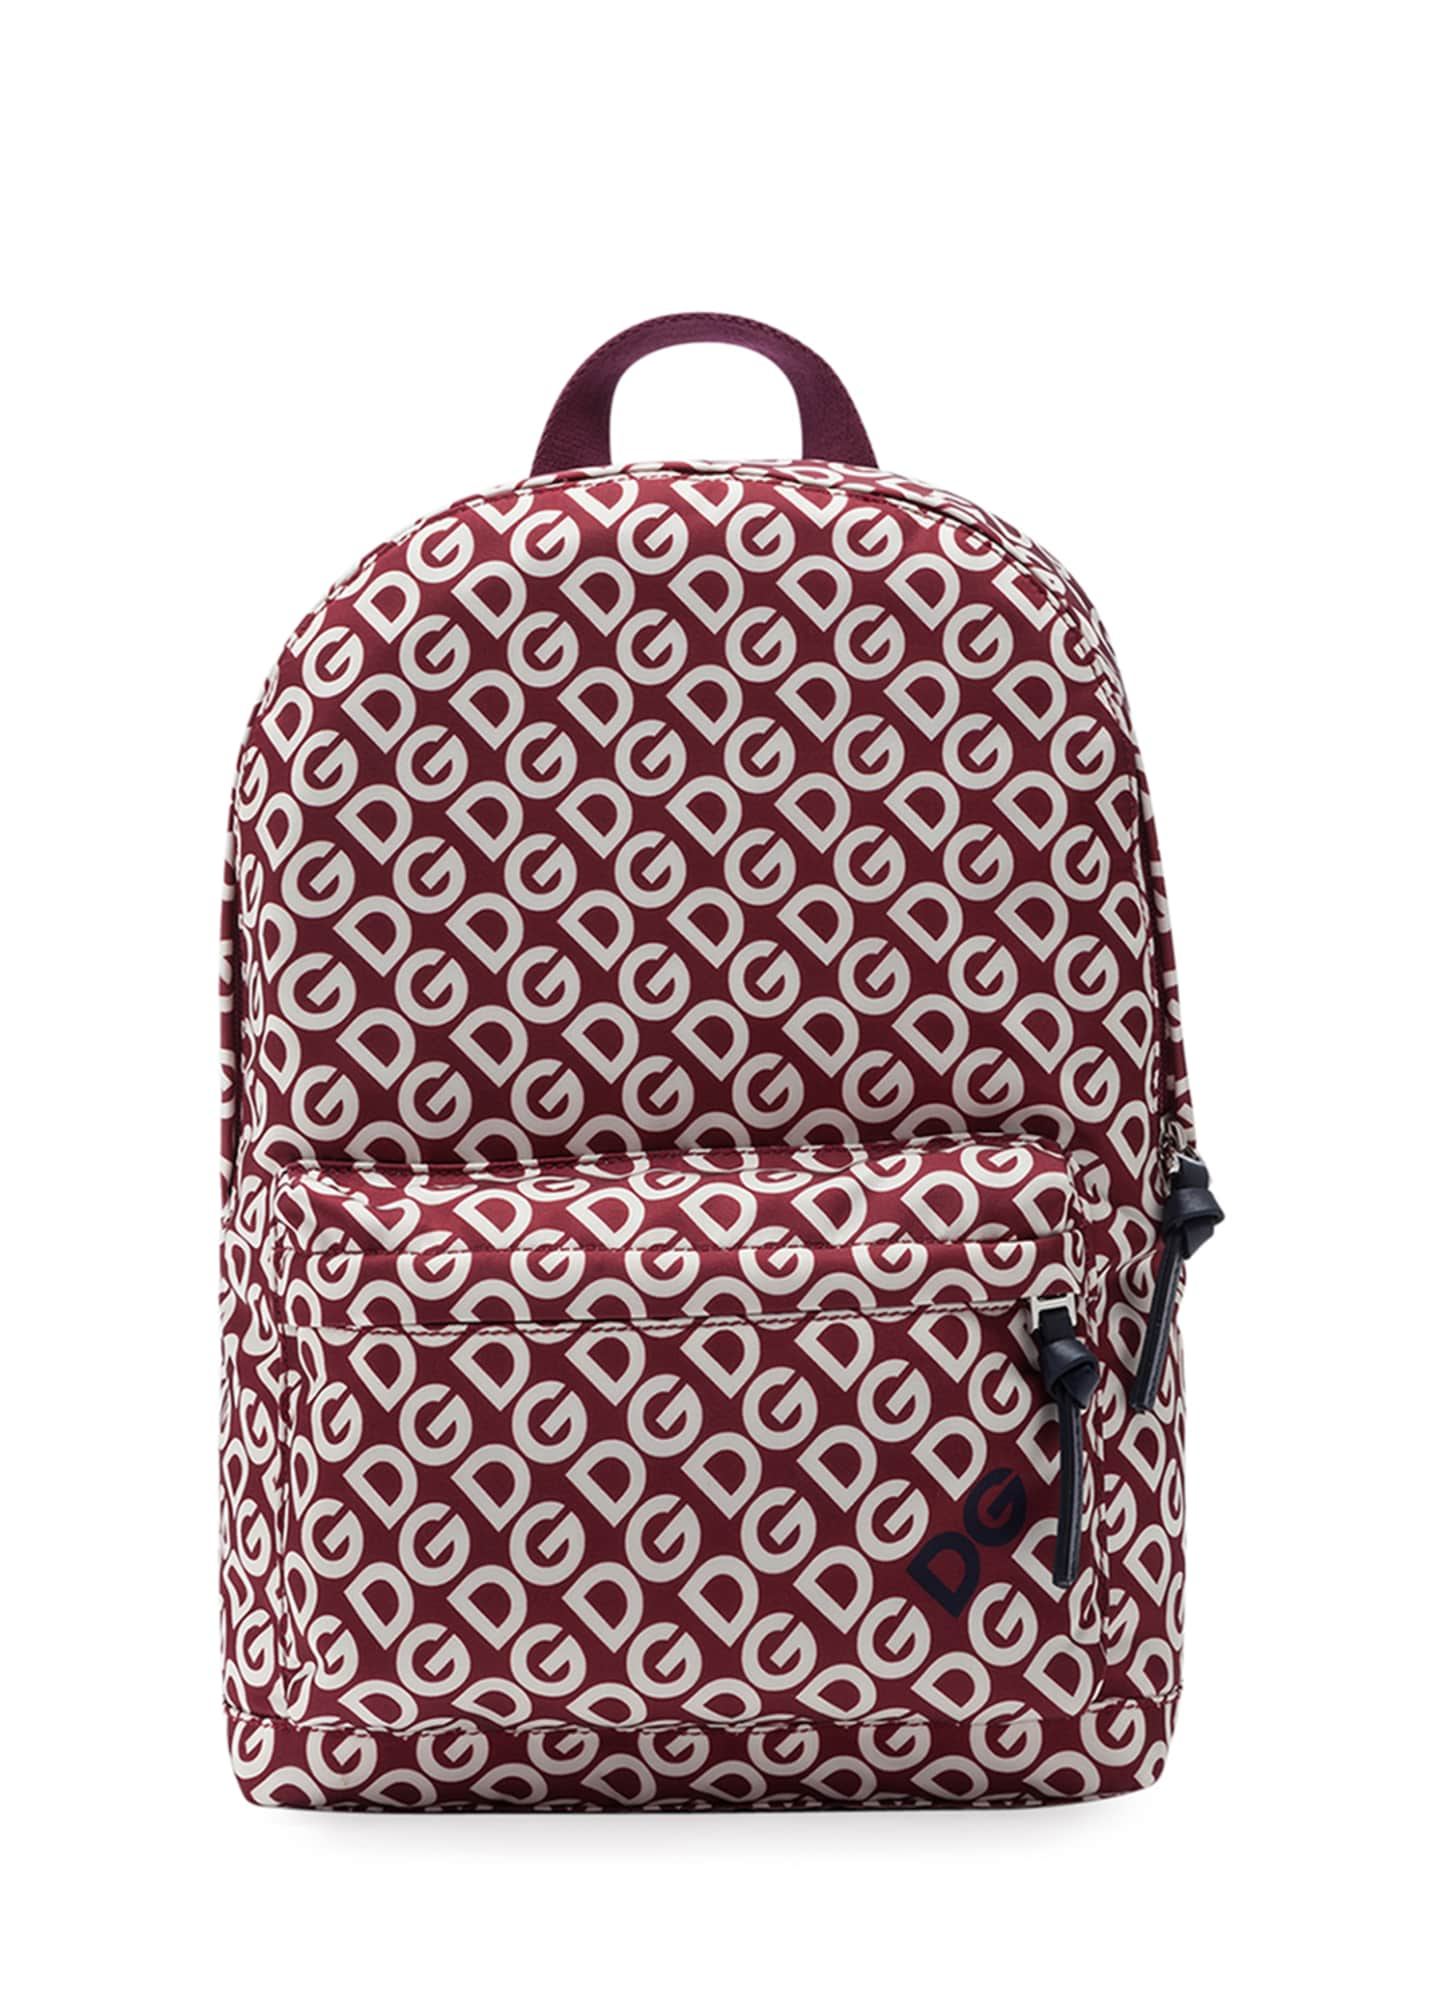 Dolce & Gabbana Kid's DG Print Backpack